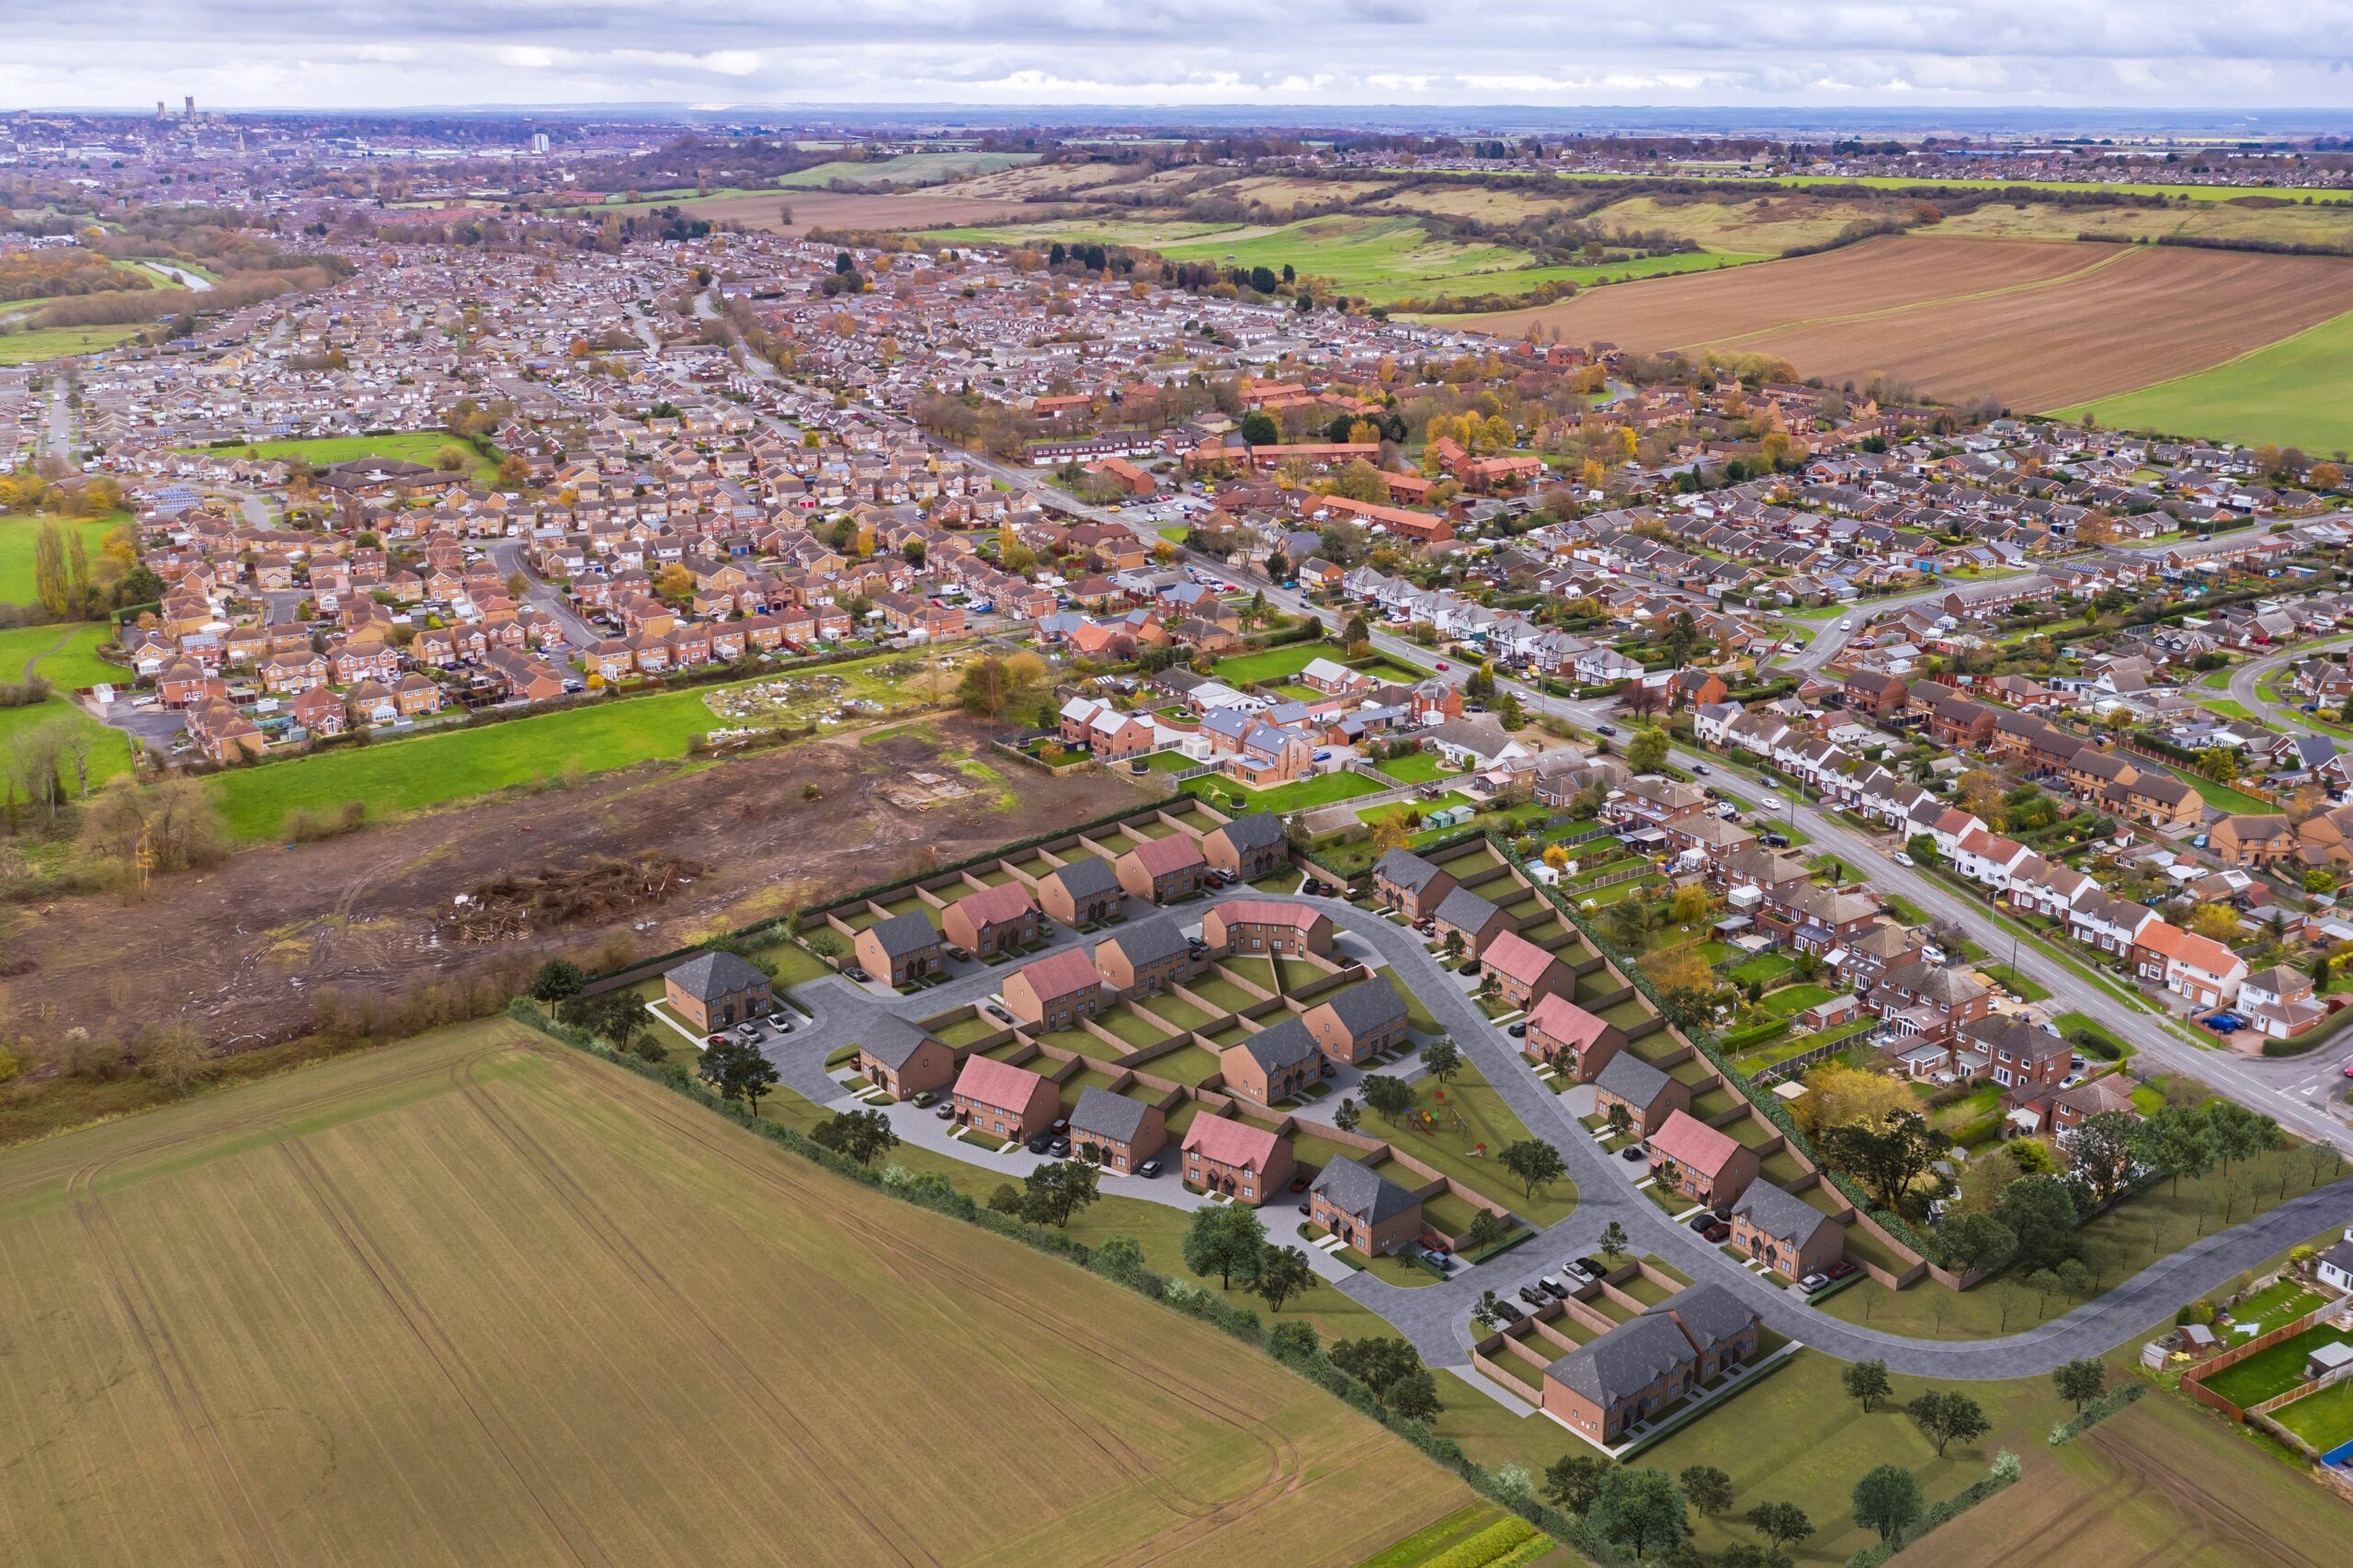 Plans to regenerate disused land with new development of affordable homes